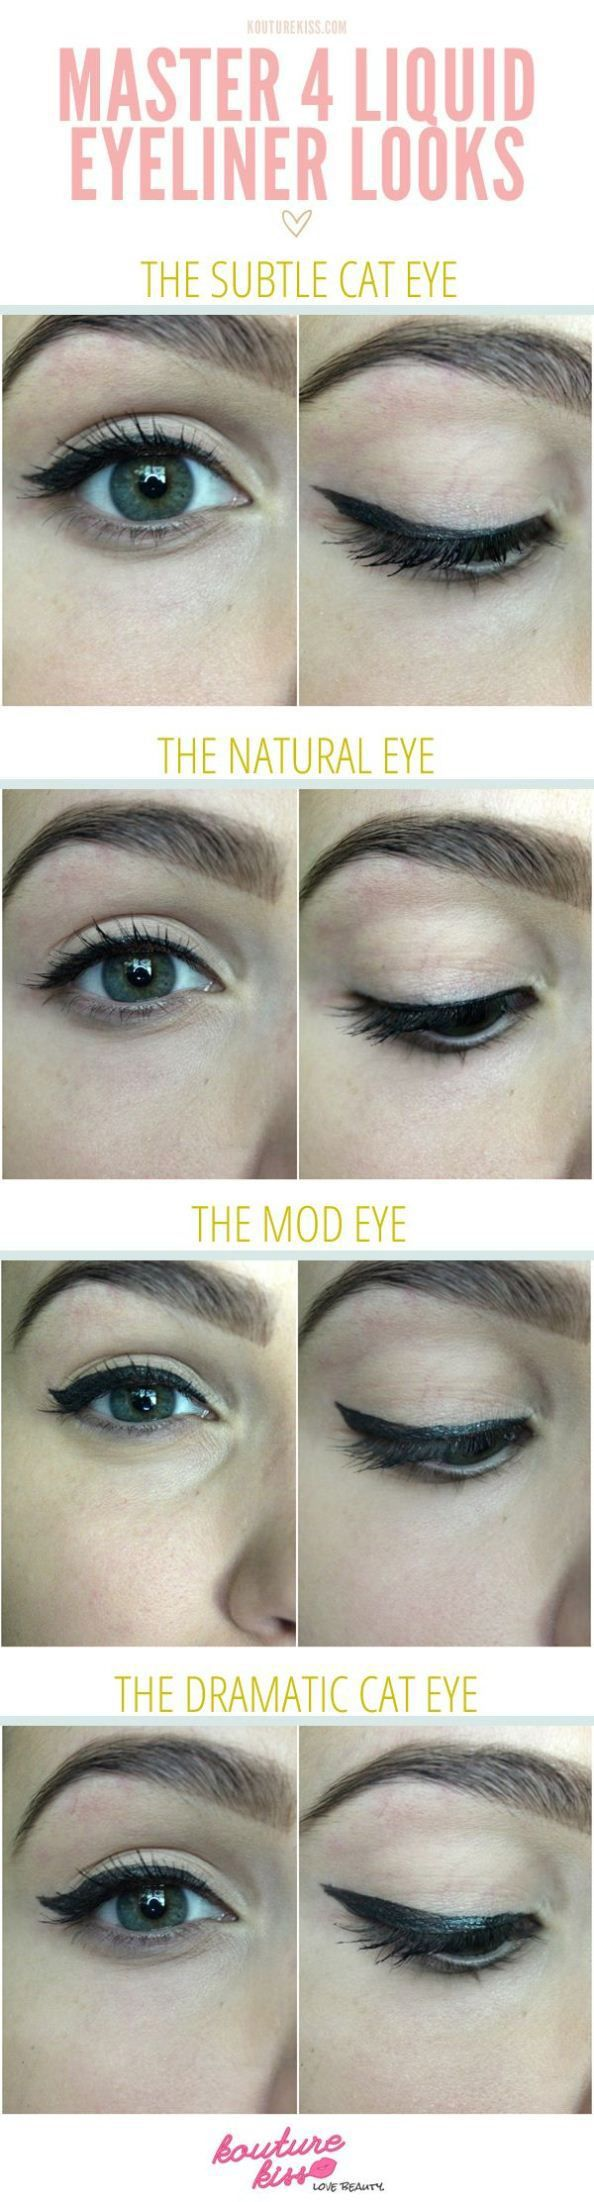 20 Liquid Eyeliner Hacks, Tips and Tricks For The Perfect ...